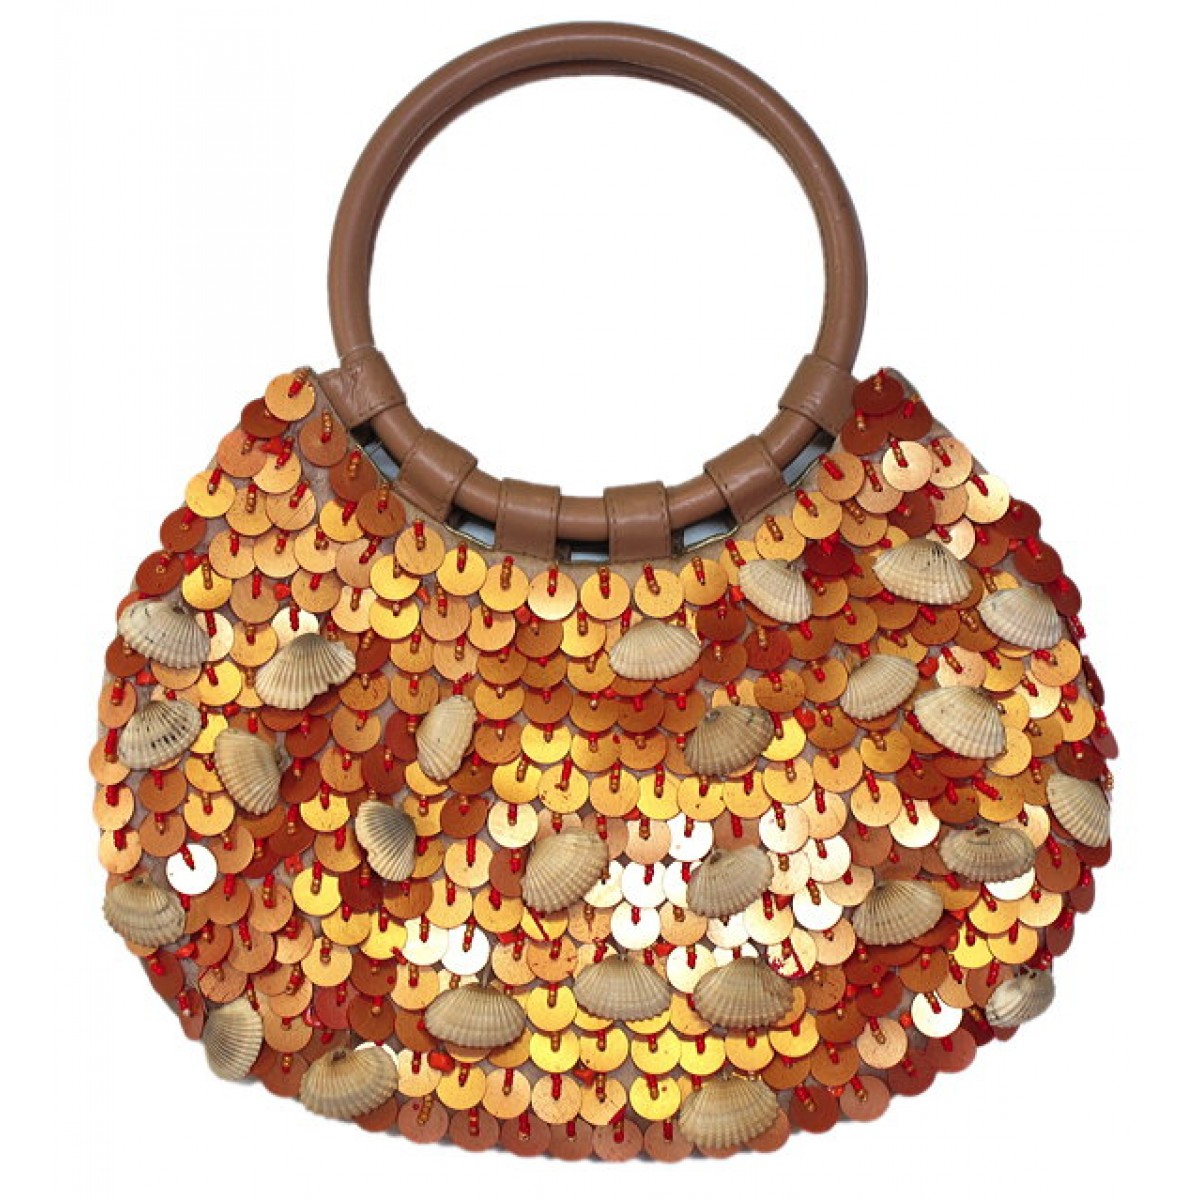 Clutch with Seqin & Seashell